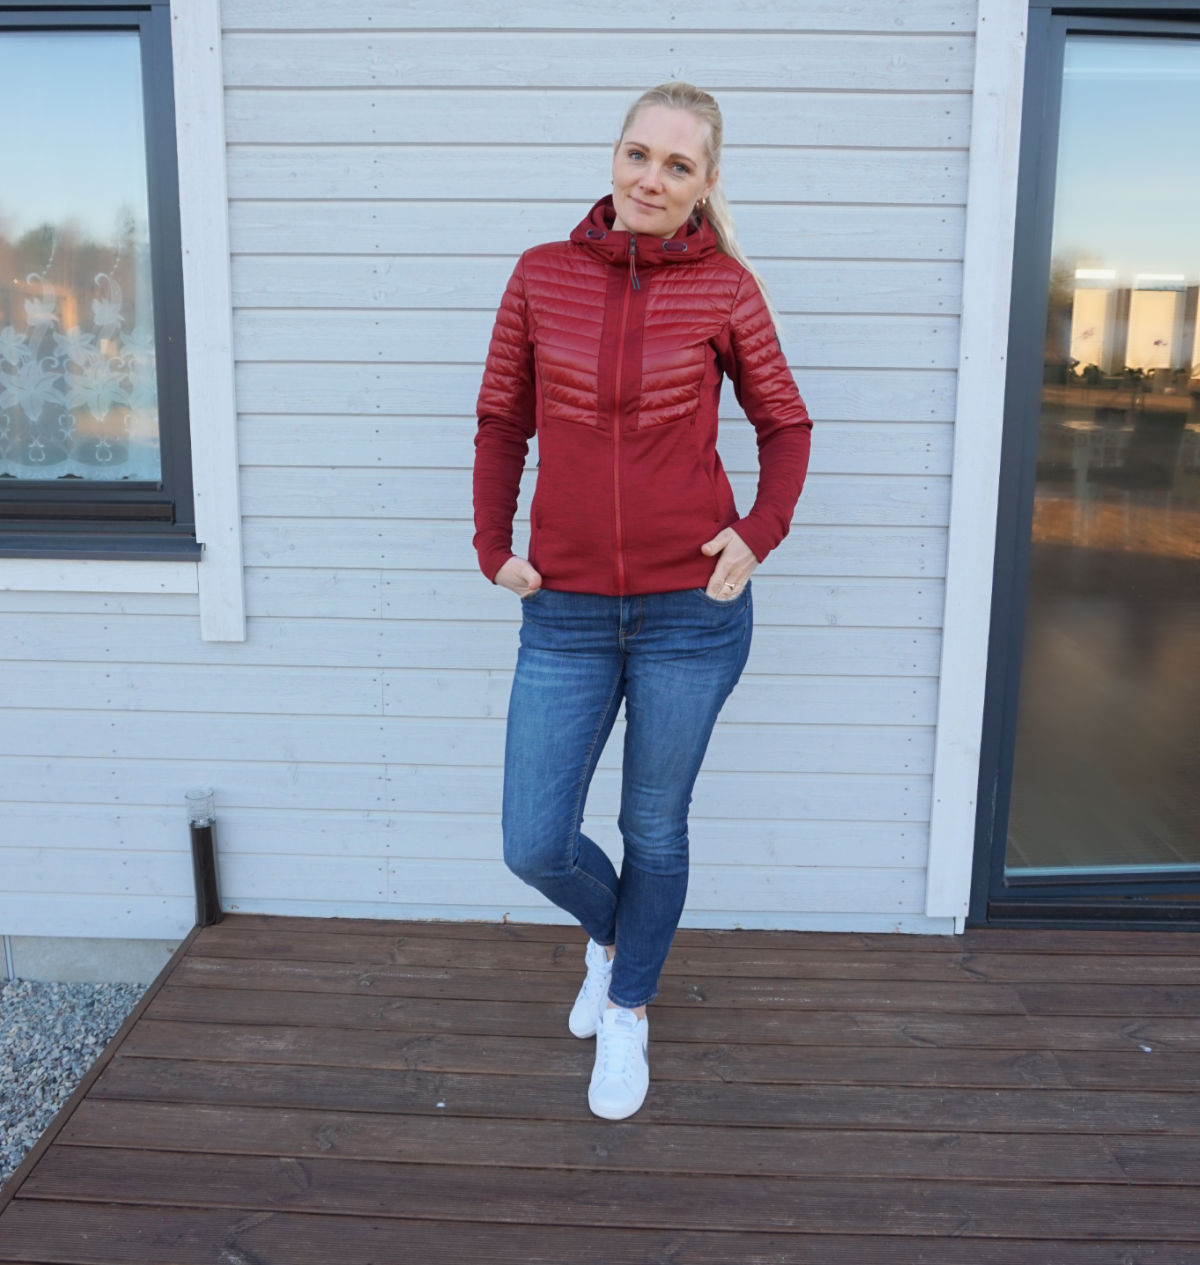 Simple casual outfit - Didriksons Annema jacket, Lindex Lilly jeans, Nike sneakers.